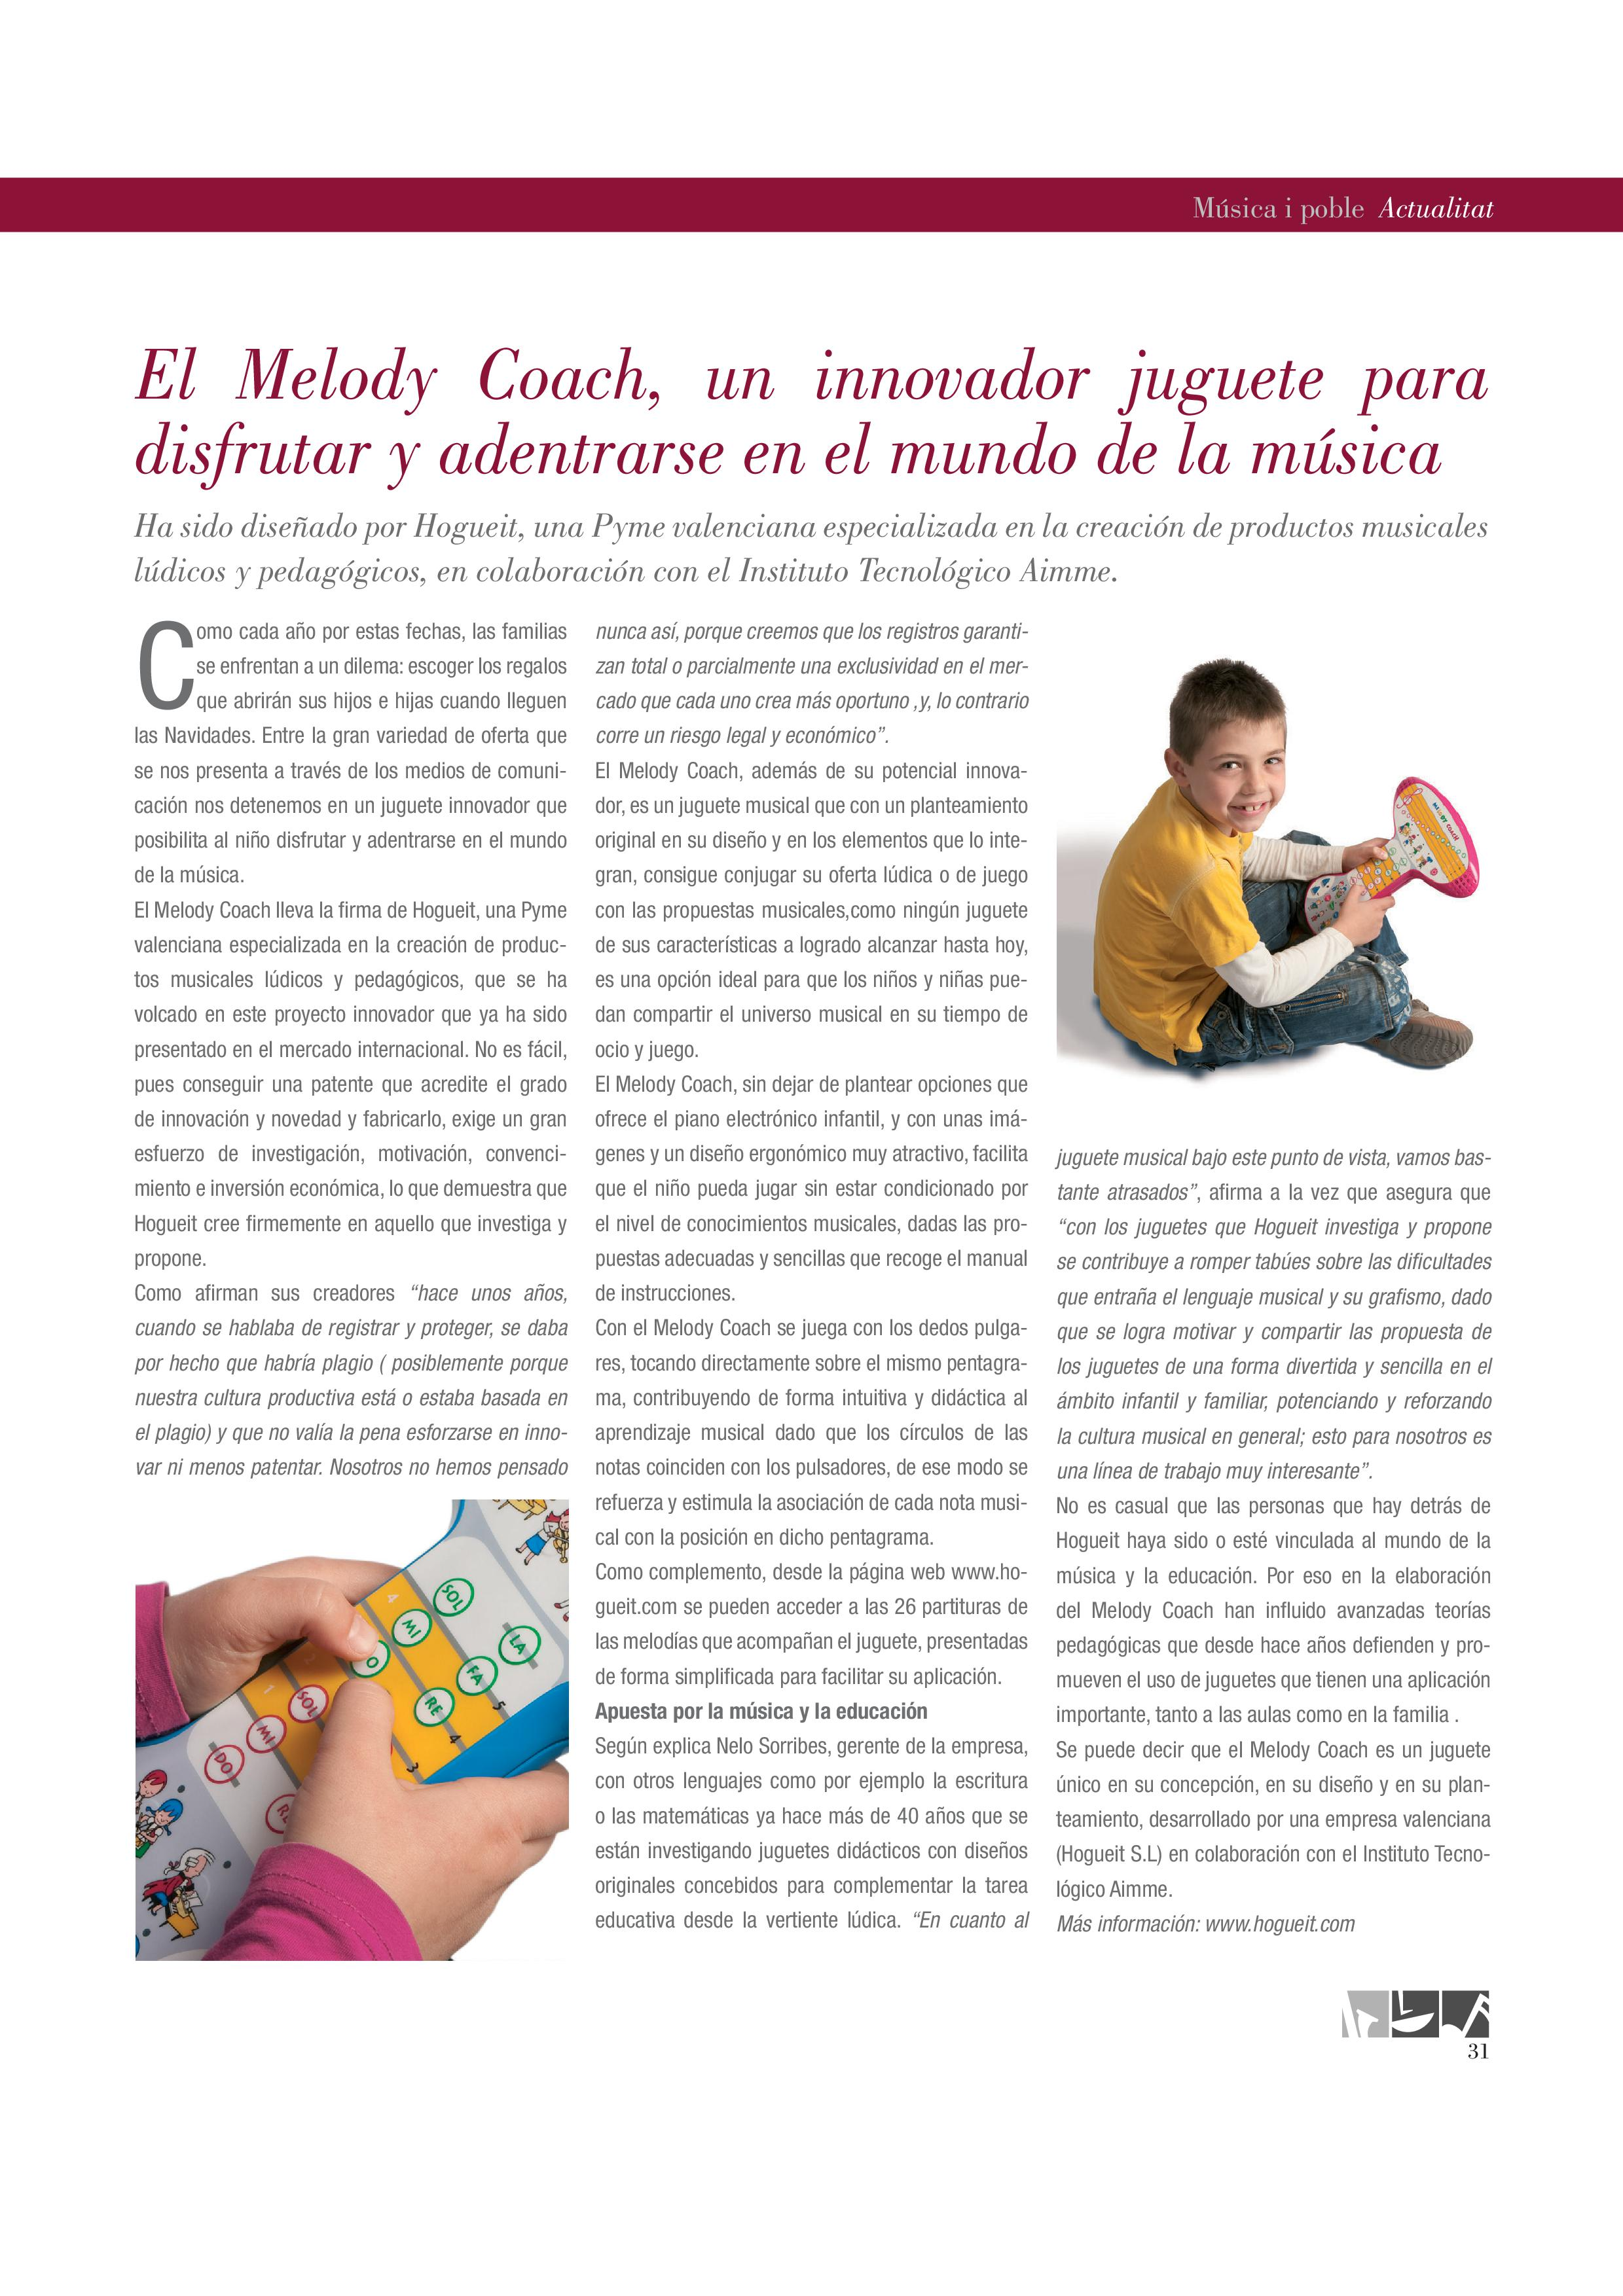 Melody Coach en la Revista MÚSICA I POBLE